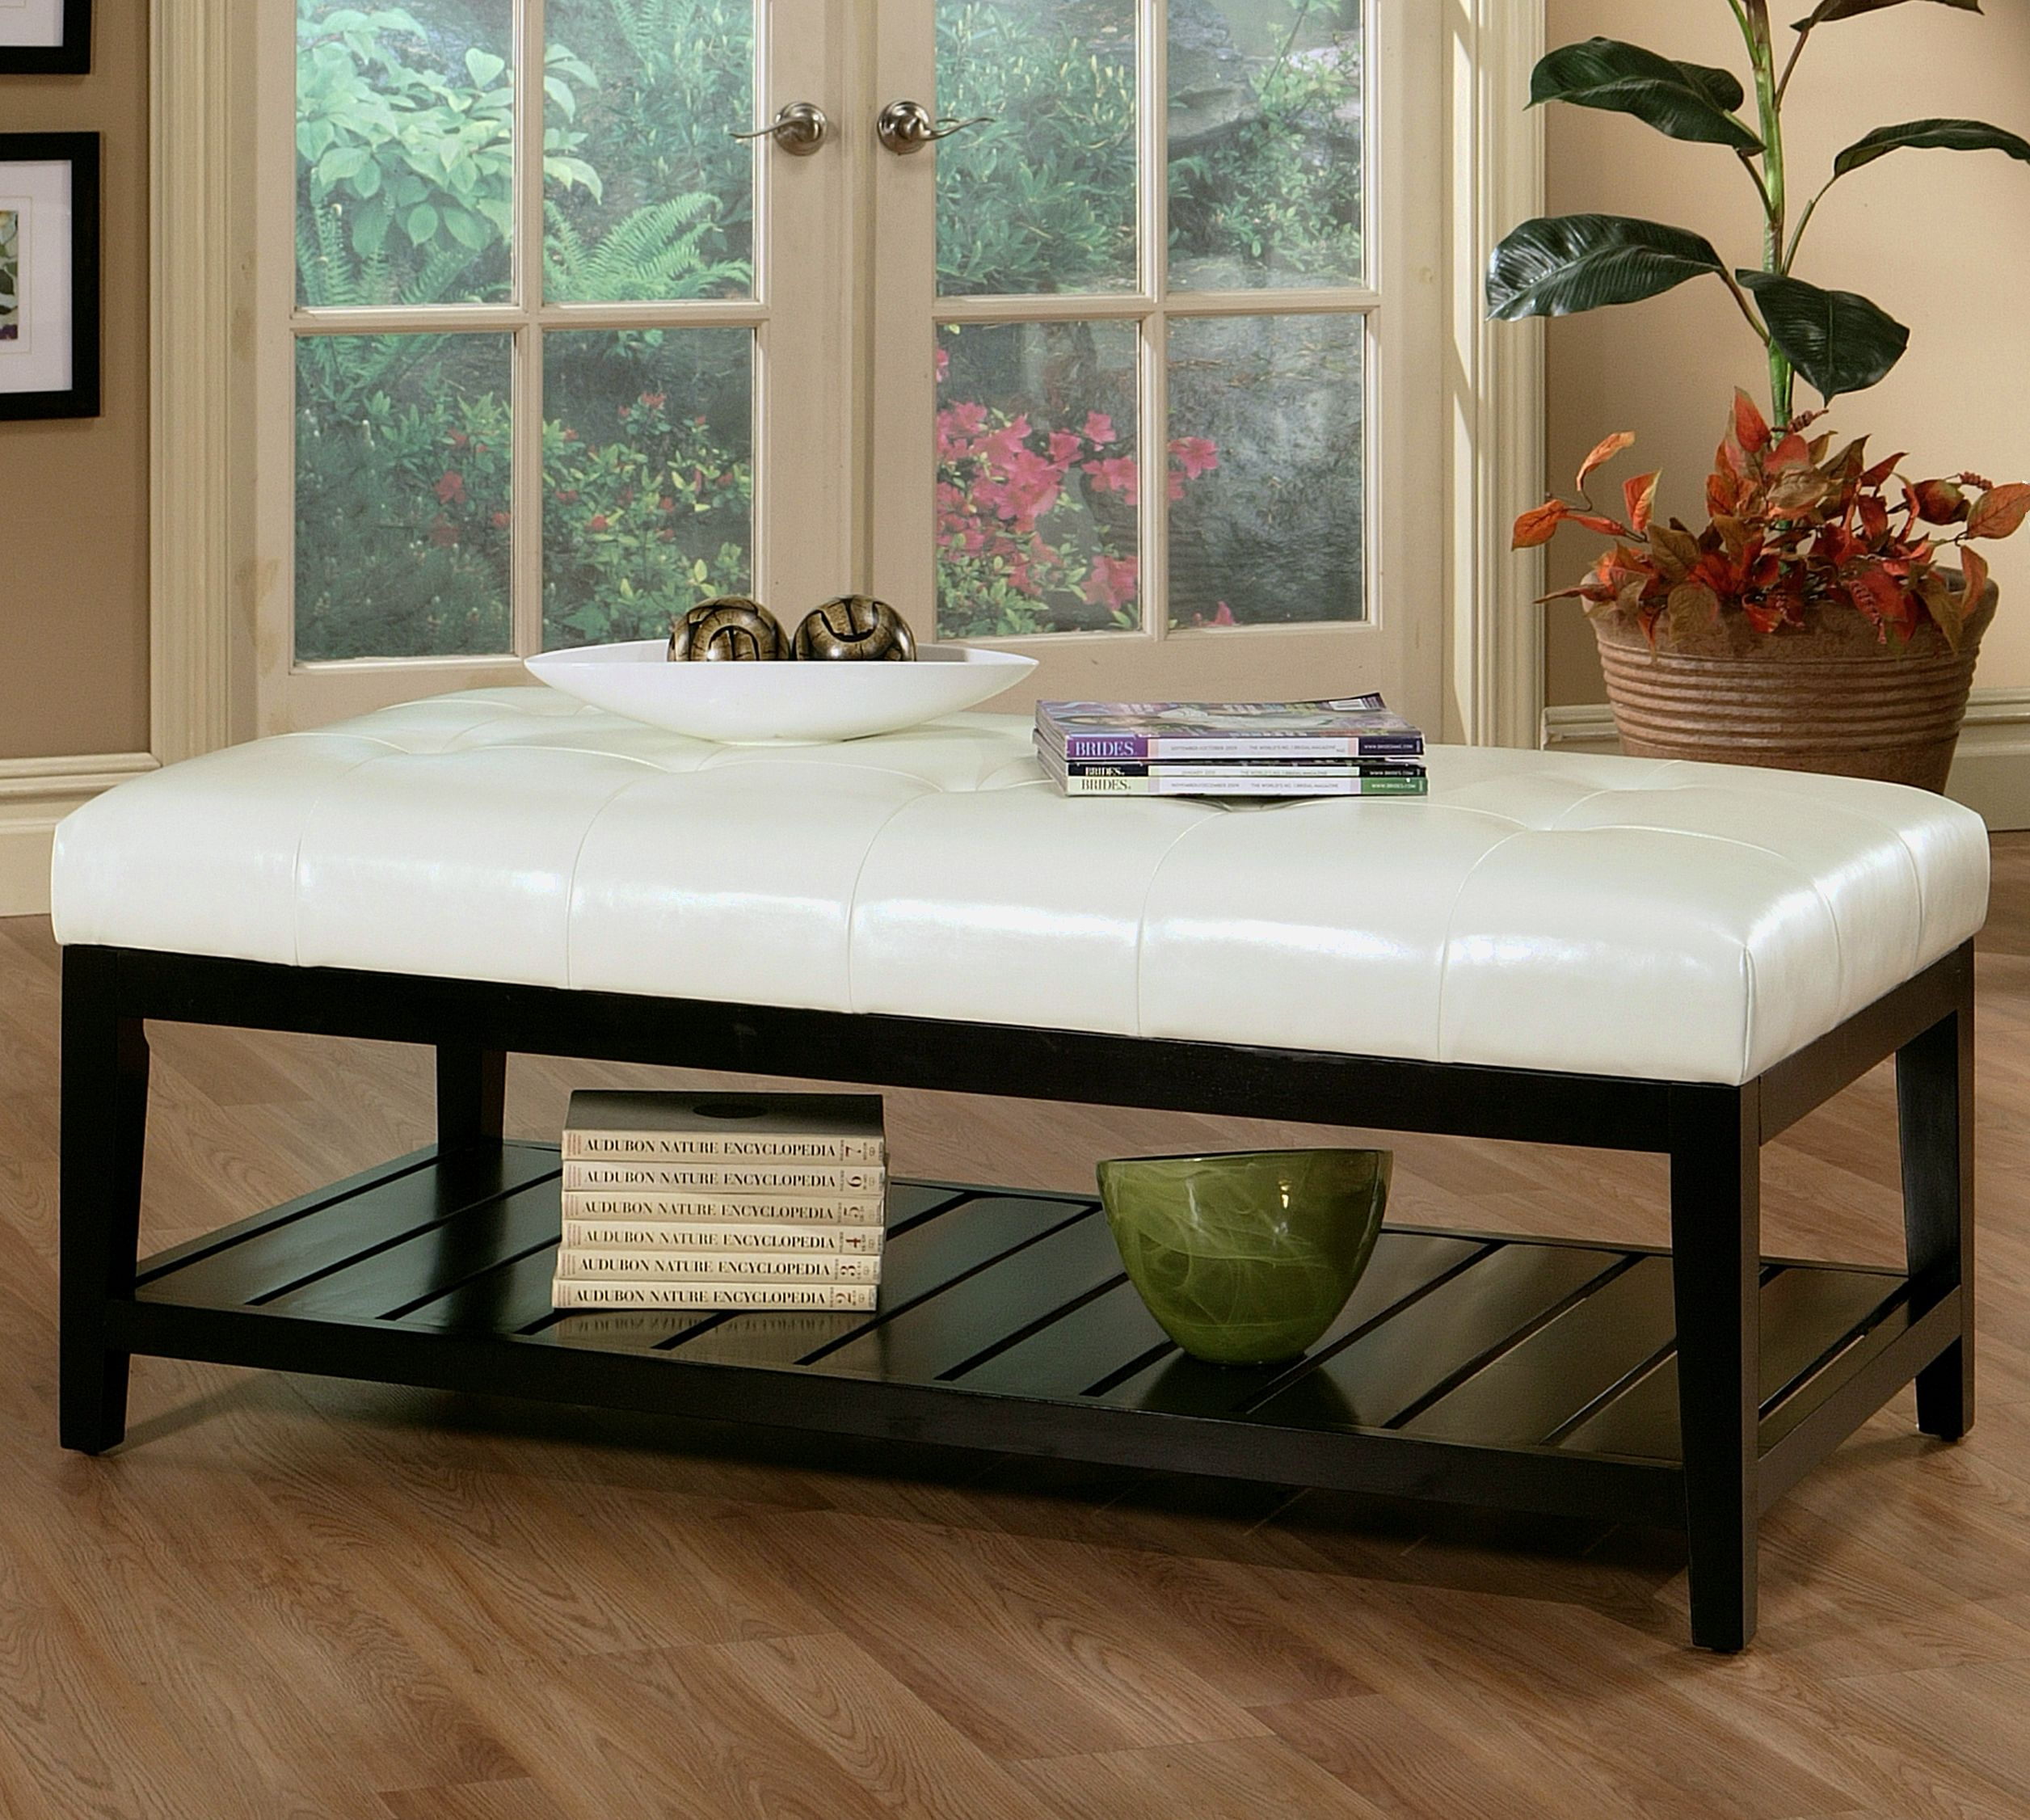 Brilliant Abbyson Living Manchester White Tufted Leather Coffee Table Bralicious Painted Fabric Chair Ideas Braliciousco